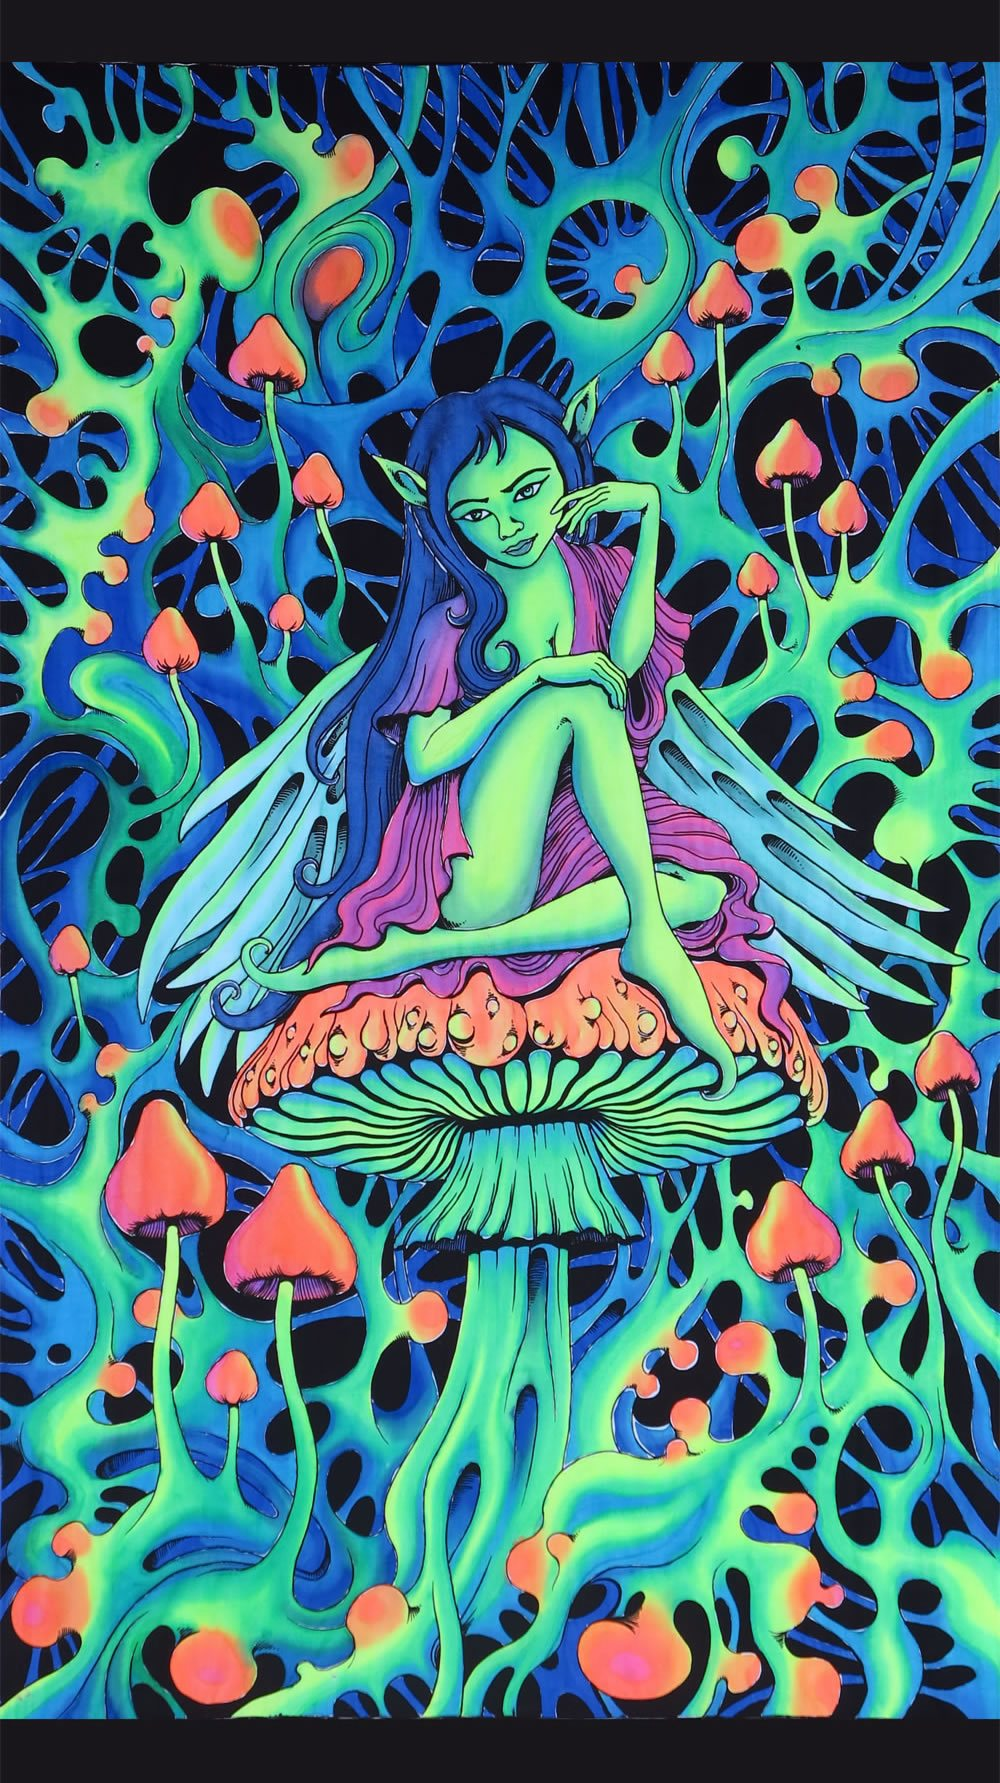 UV Wallhanging : PsyAlaska Fairy - UV Wallhangings - Space Tribe